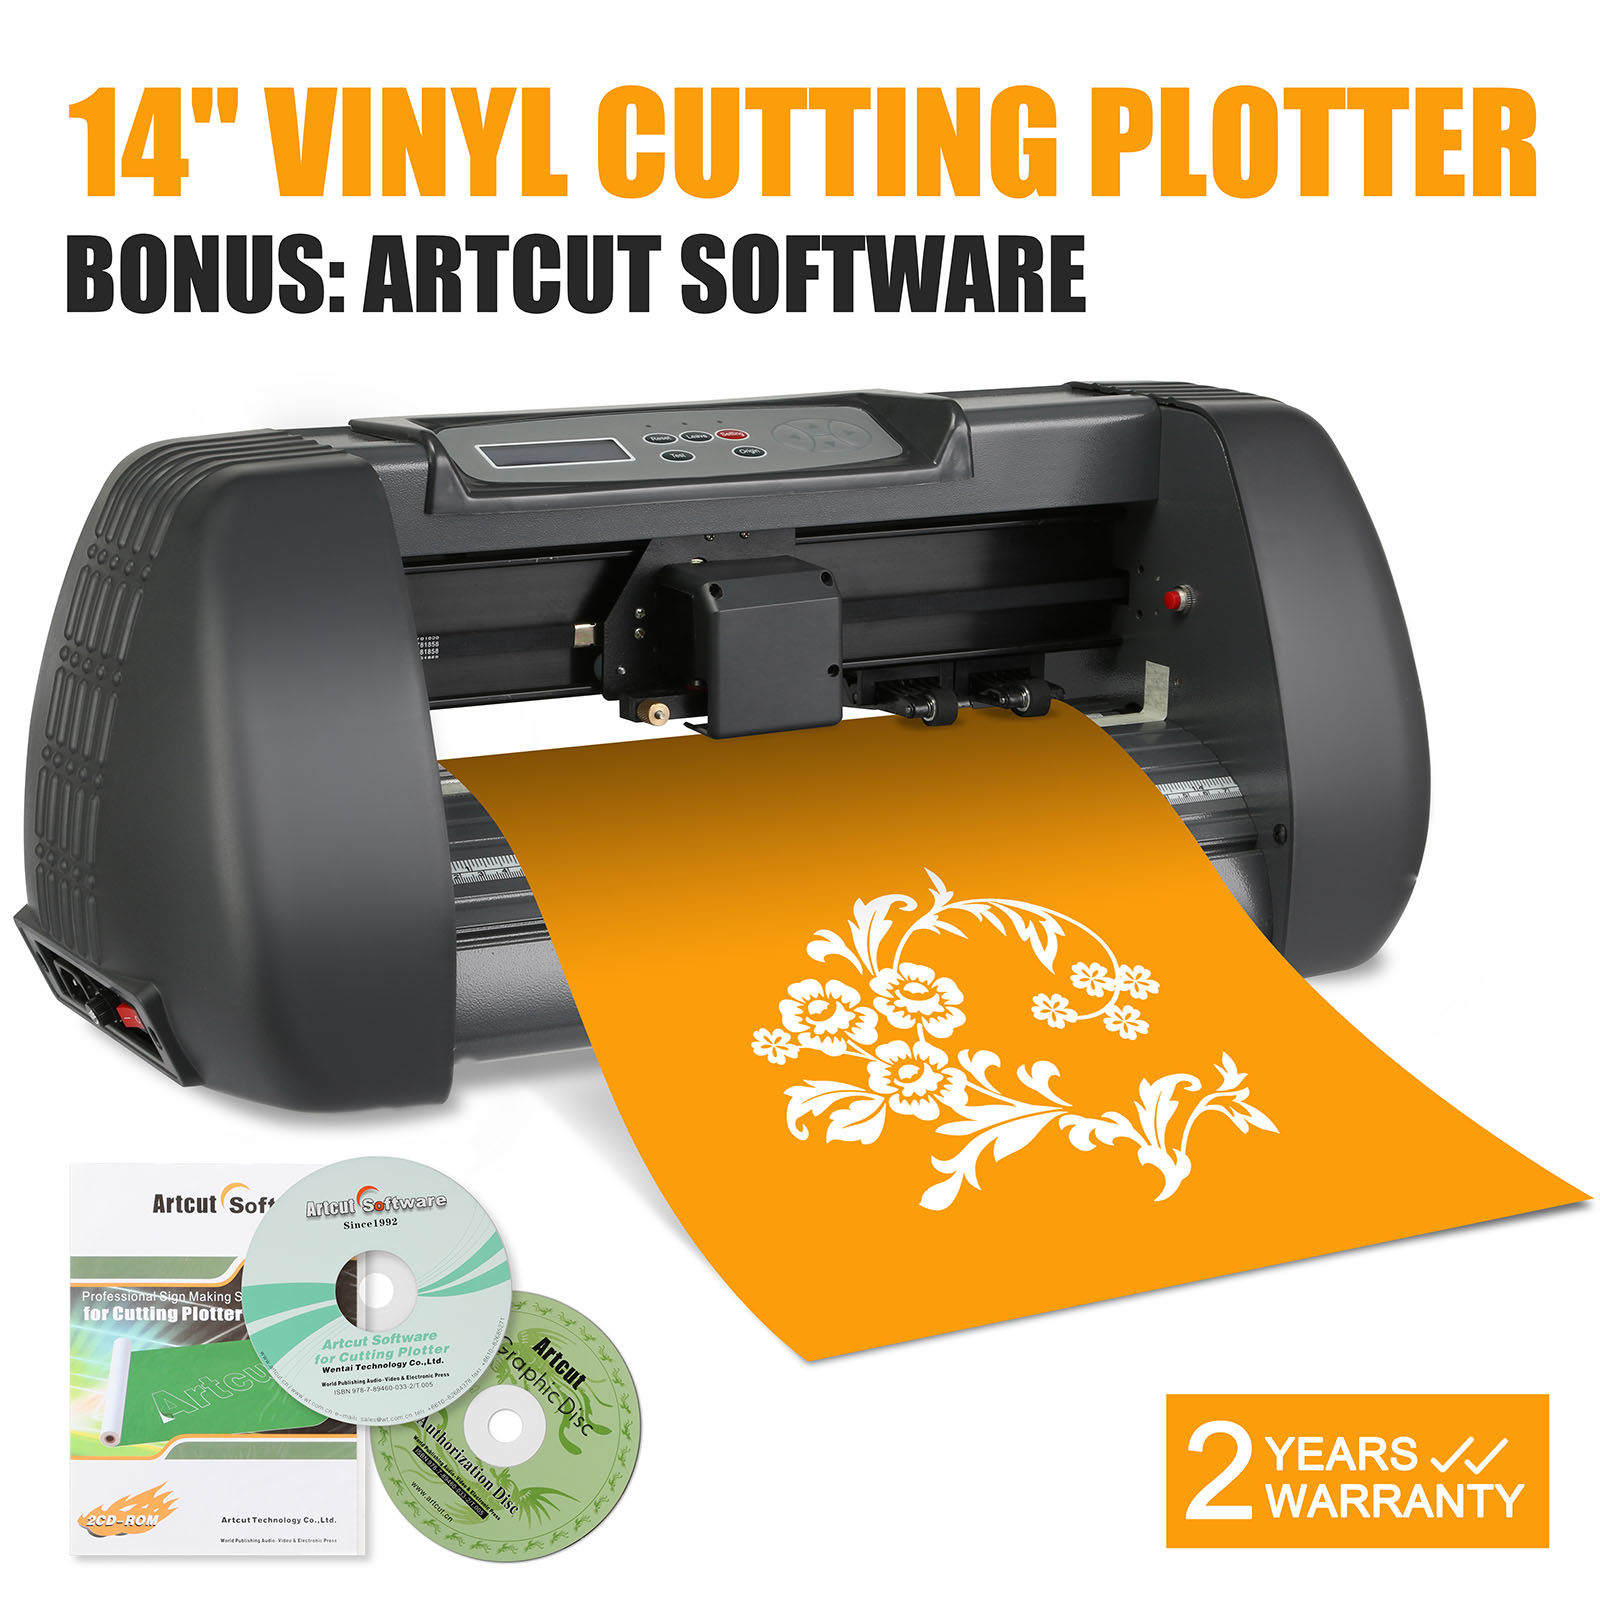 new 14 vinyl cutting plotter printer desktop cutter artcut machine software ebay. Black Bedroom Furniture Sets. Home Design Ideas